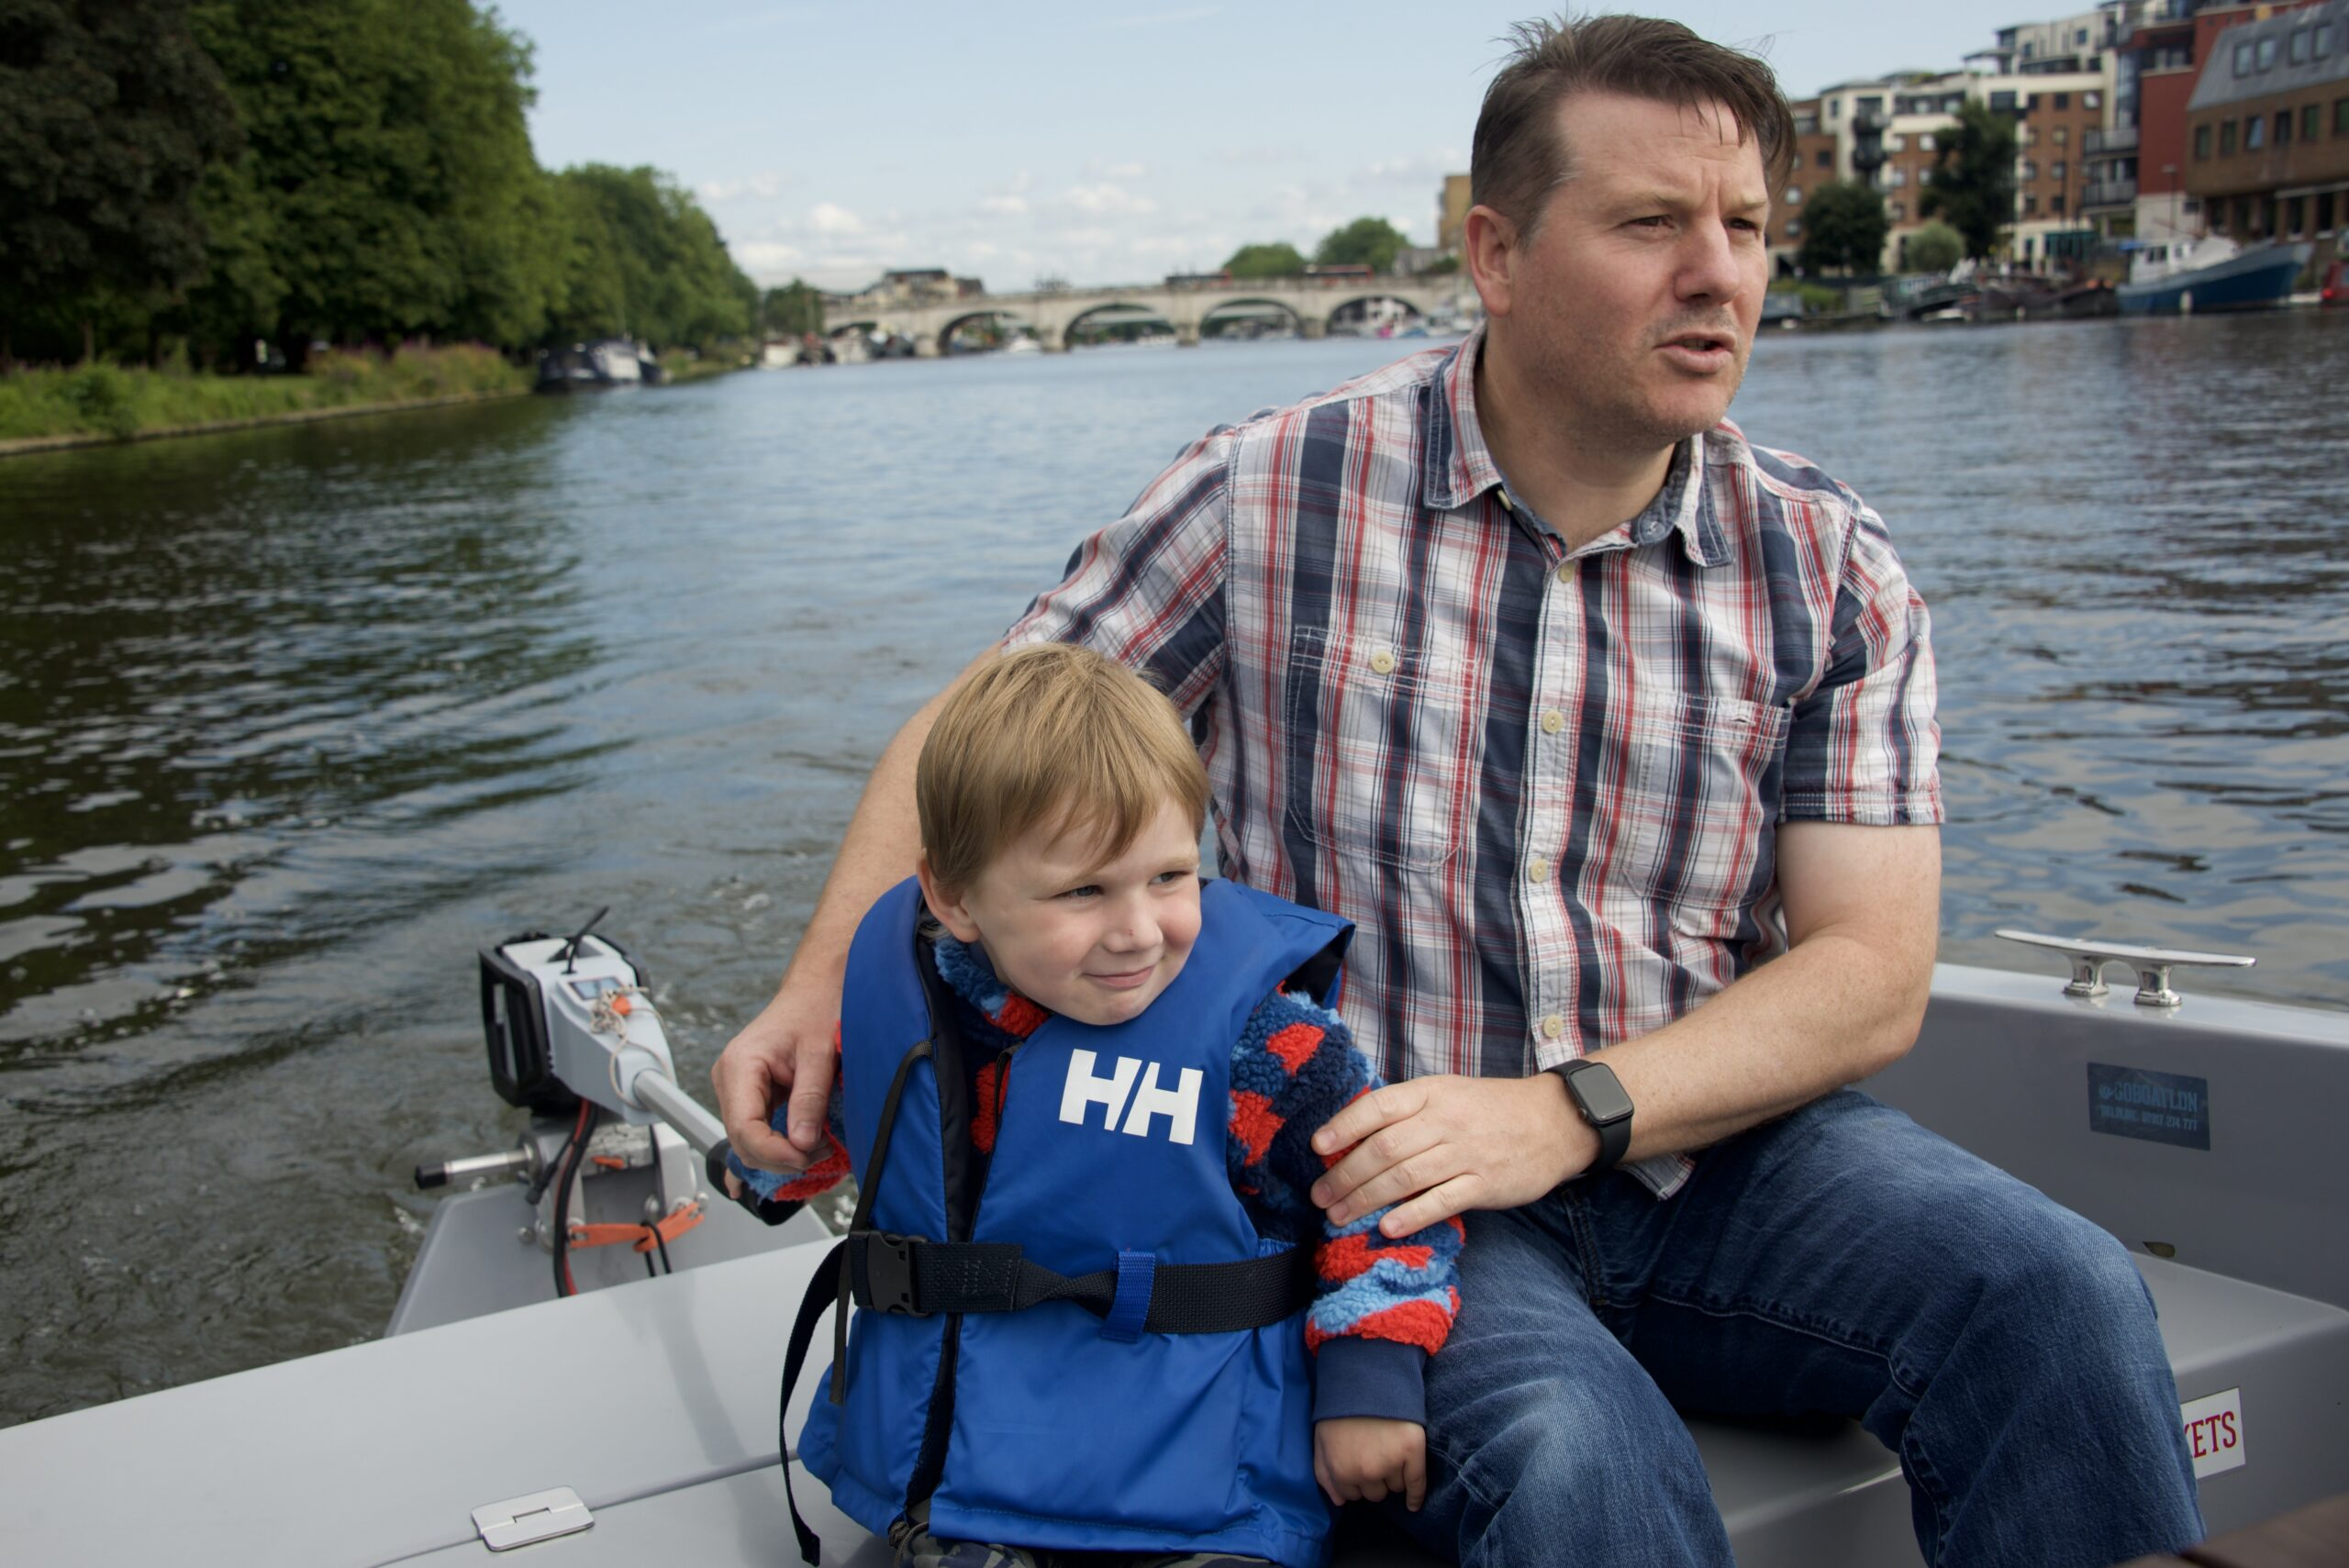 Dad and child on a goBoat adventure down the Thames